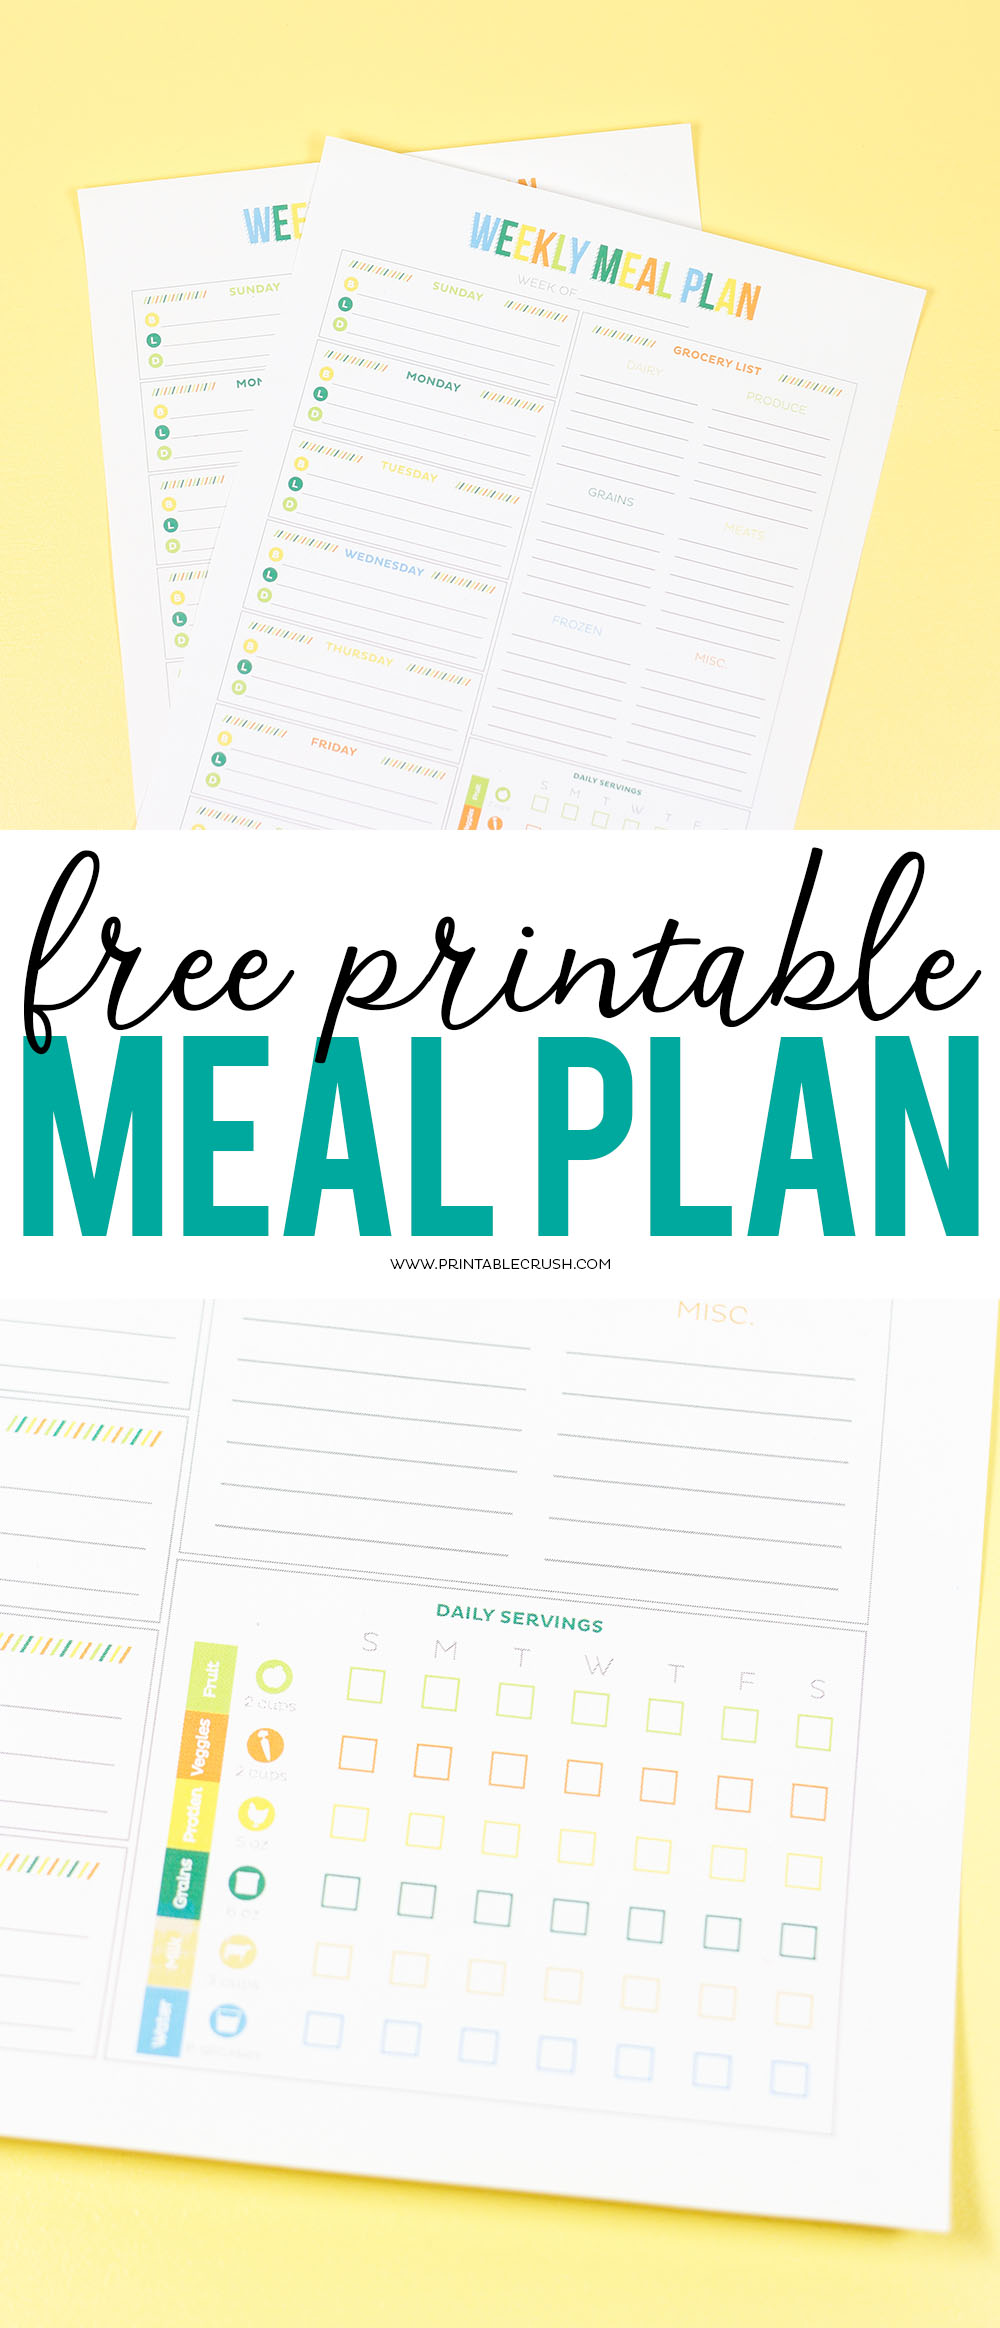 Download this free printable meal planner and health tracker.